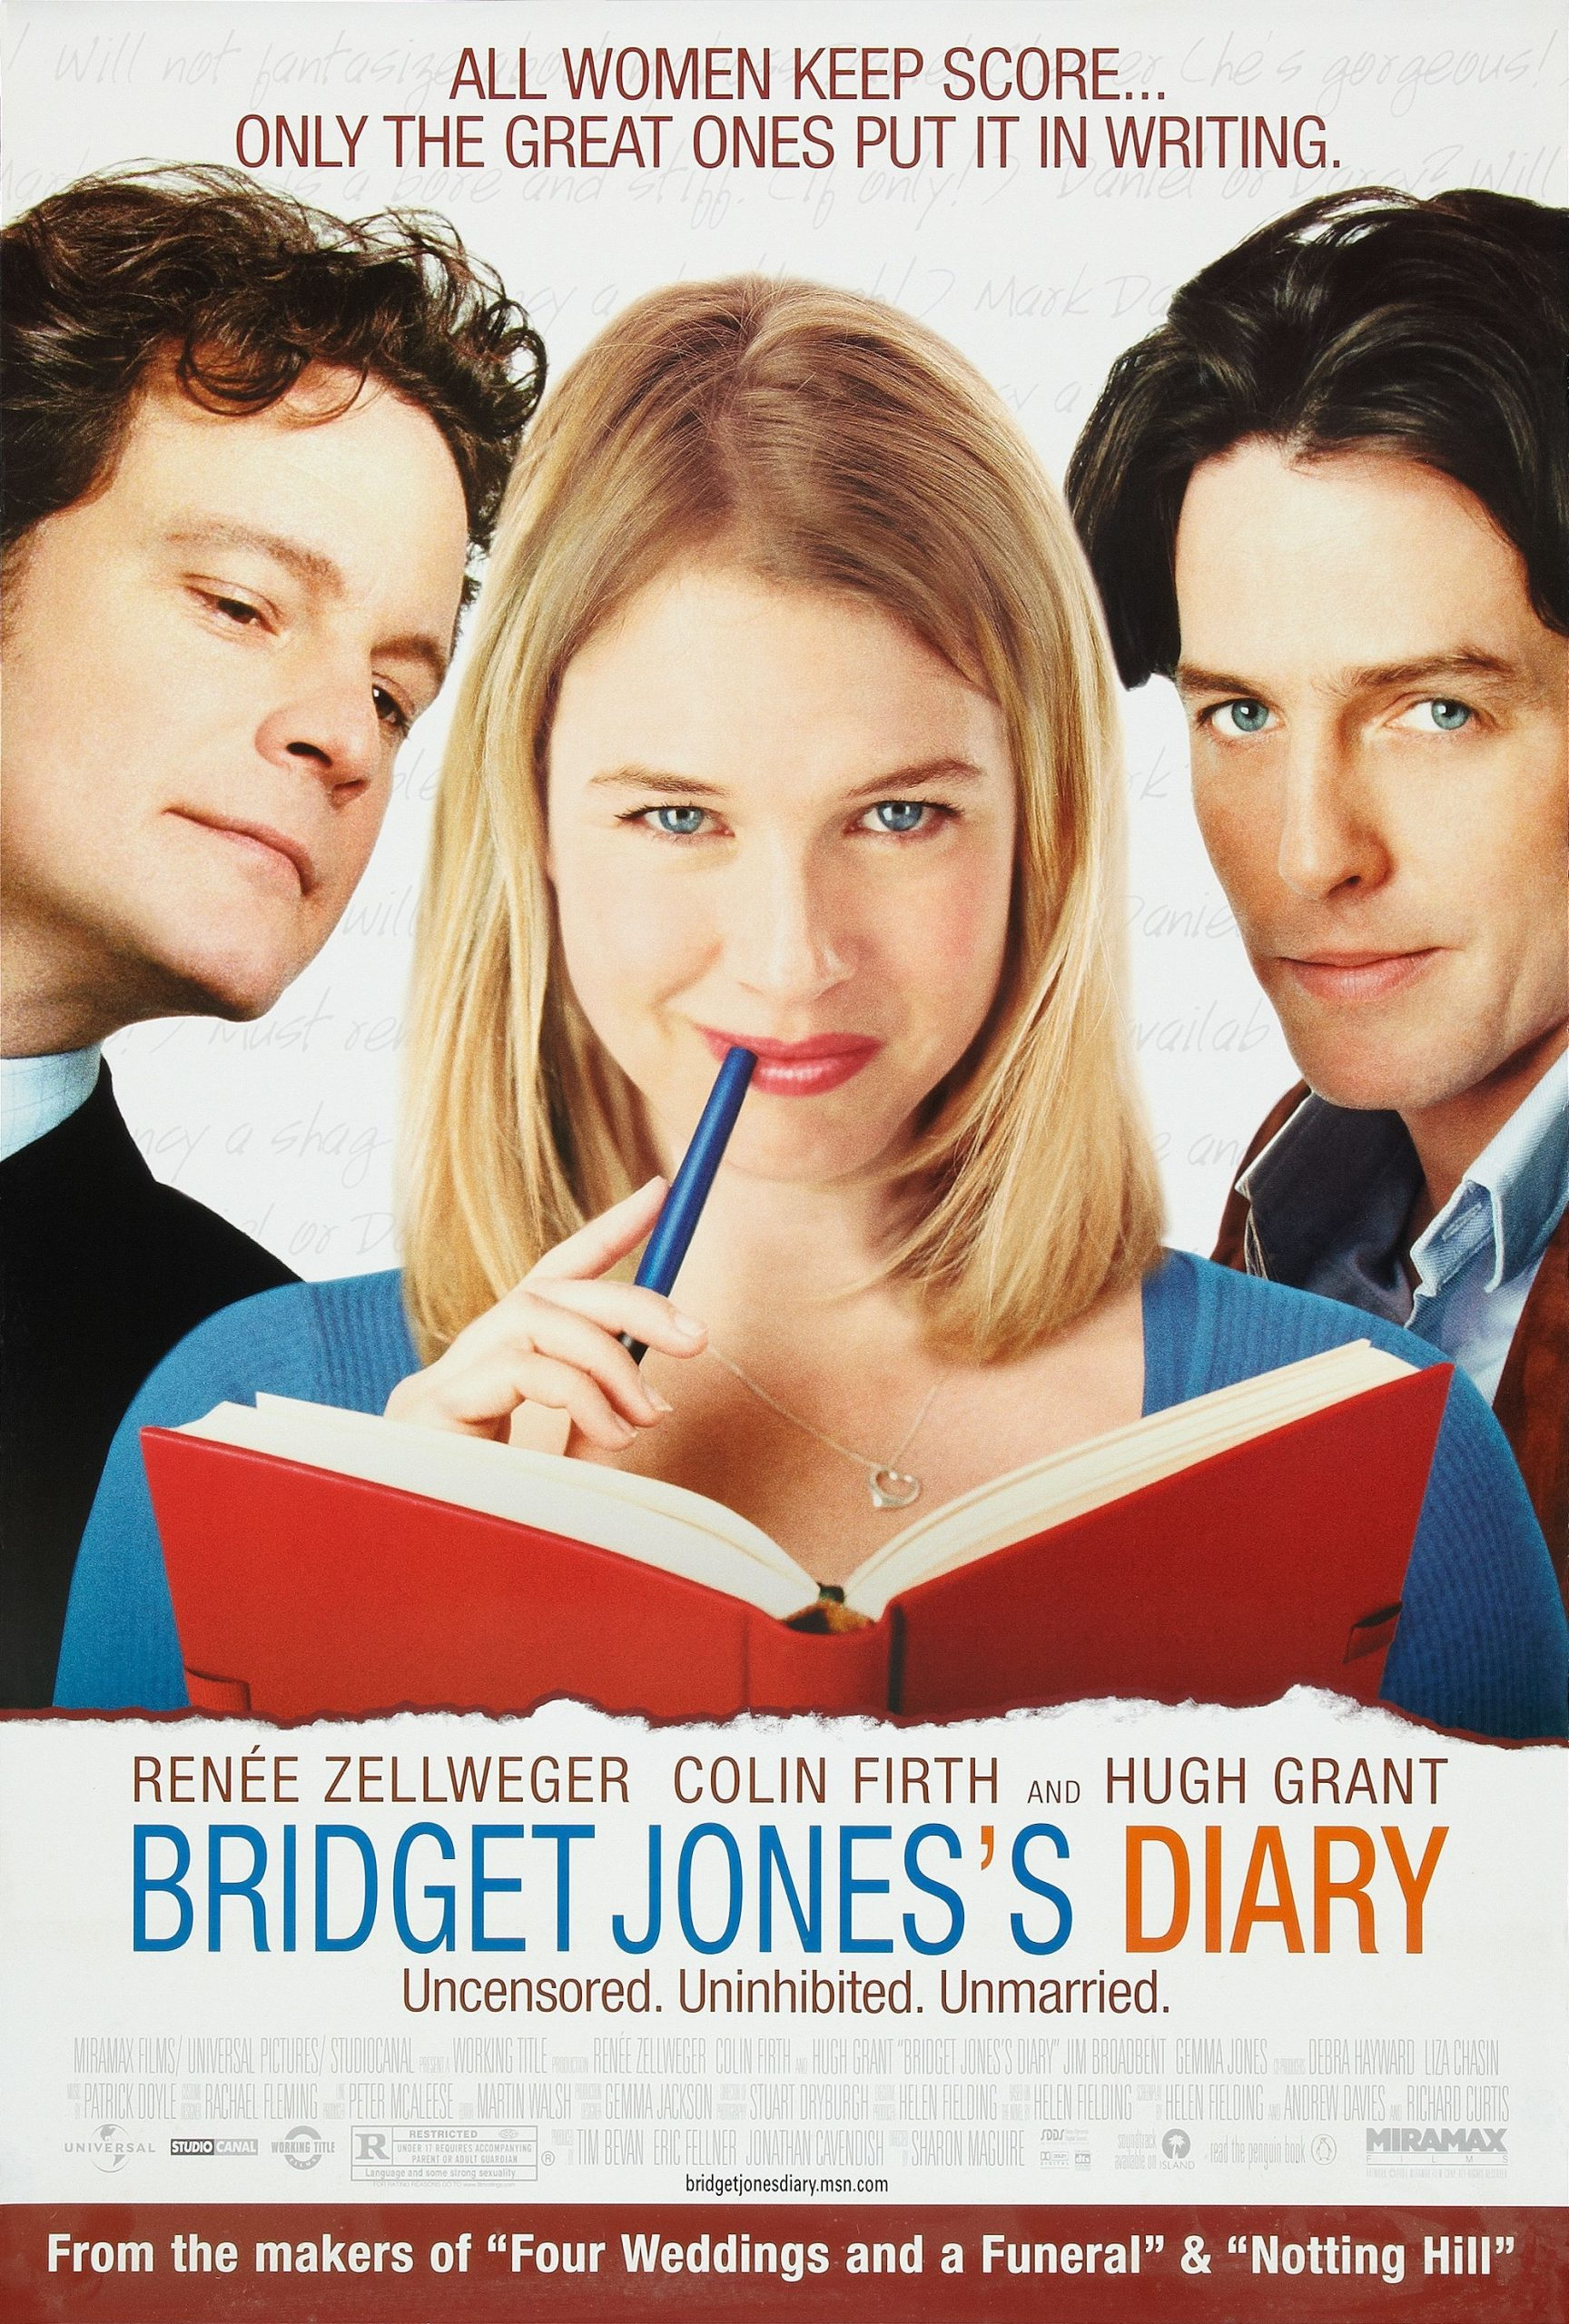 The poster for Bridget Jones's Diary